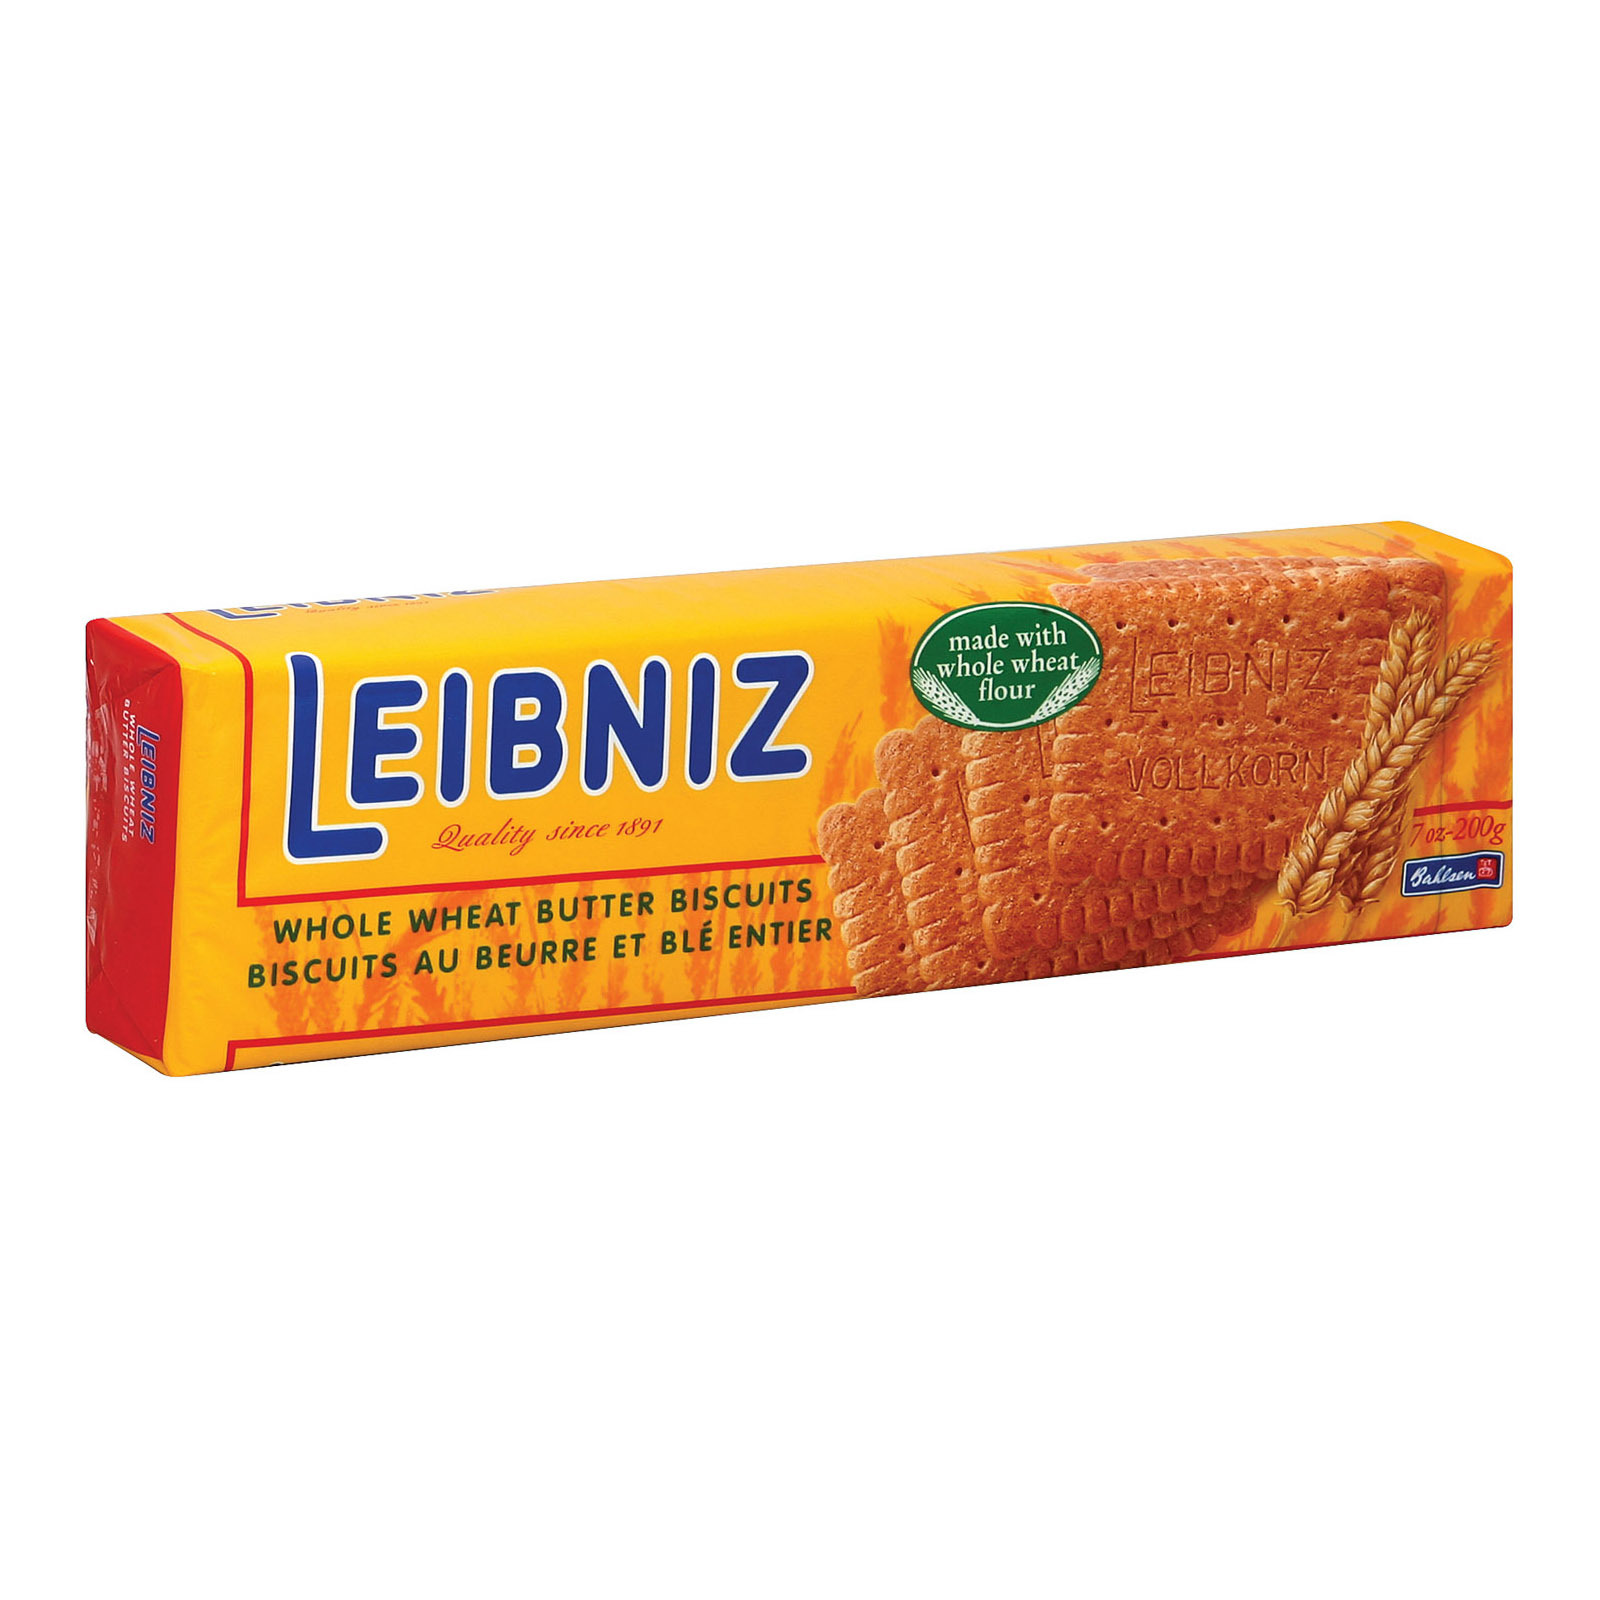 Bahlsen Leibniz Whole Wheat Butter Biscuits - Case of 18 - 7 oz.